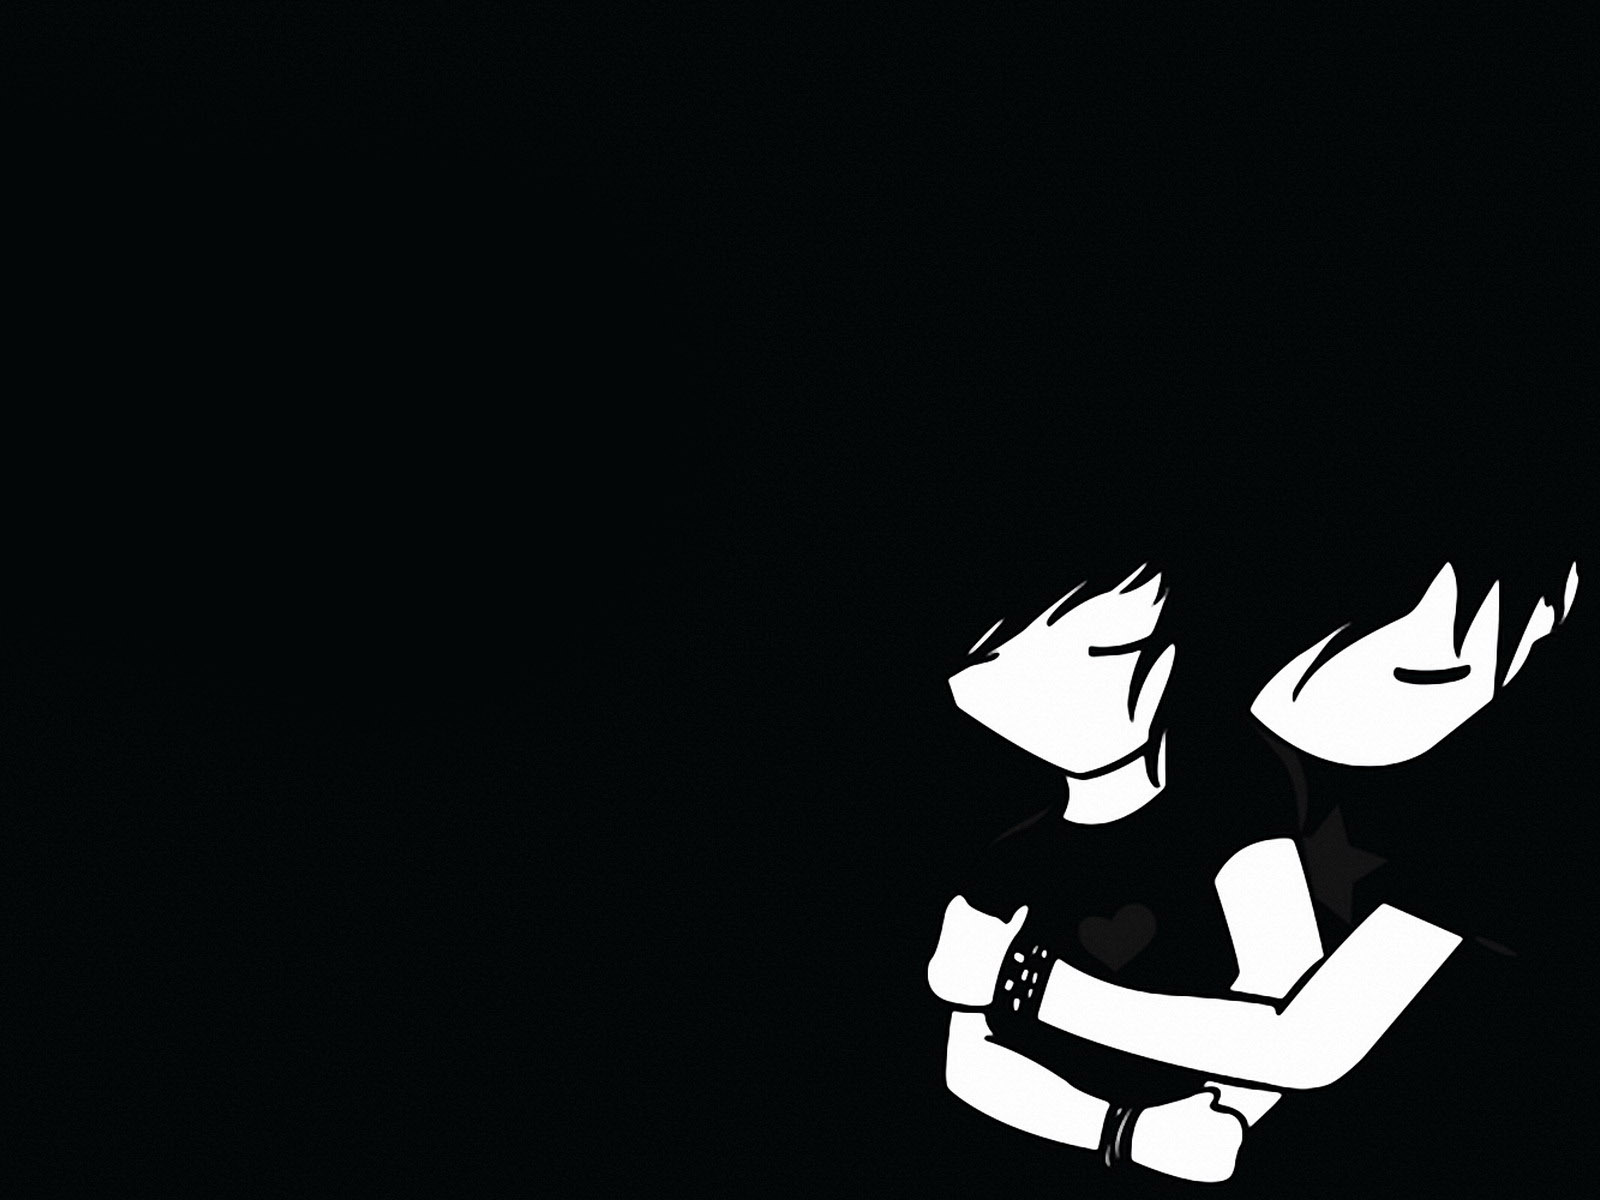 Emo boy and girl wallpapers Emo boy and girl stock photos 1600x1200